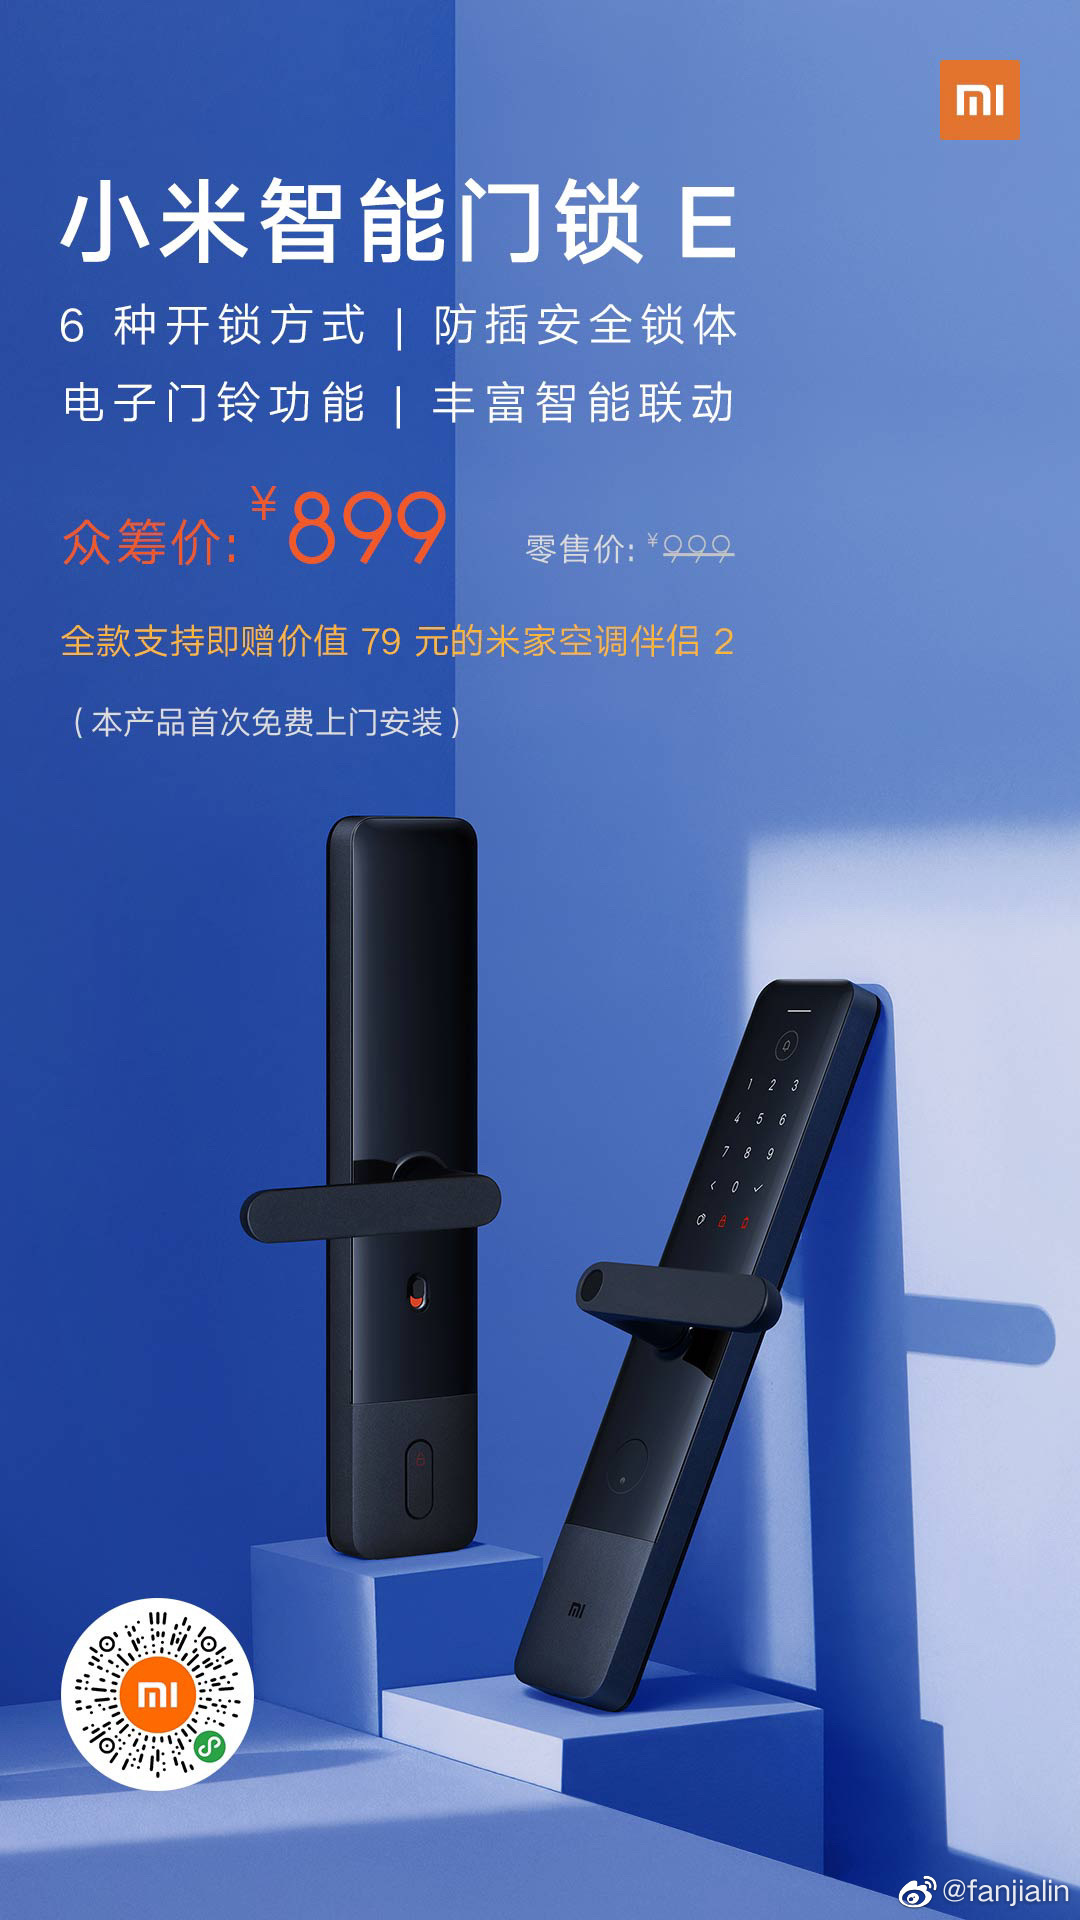 New Xiaomi Smart Door Lock E: an even smarter, safer and HomeKit compatible lock. Xiaomi  News